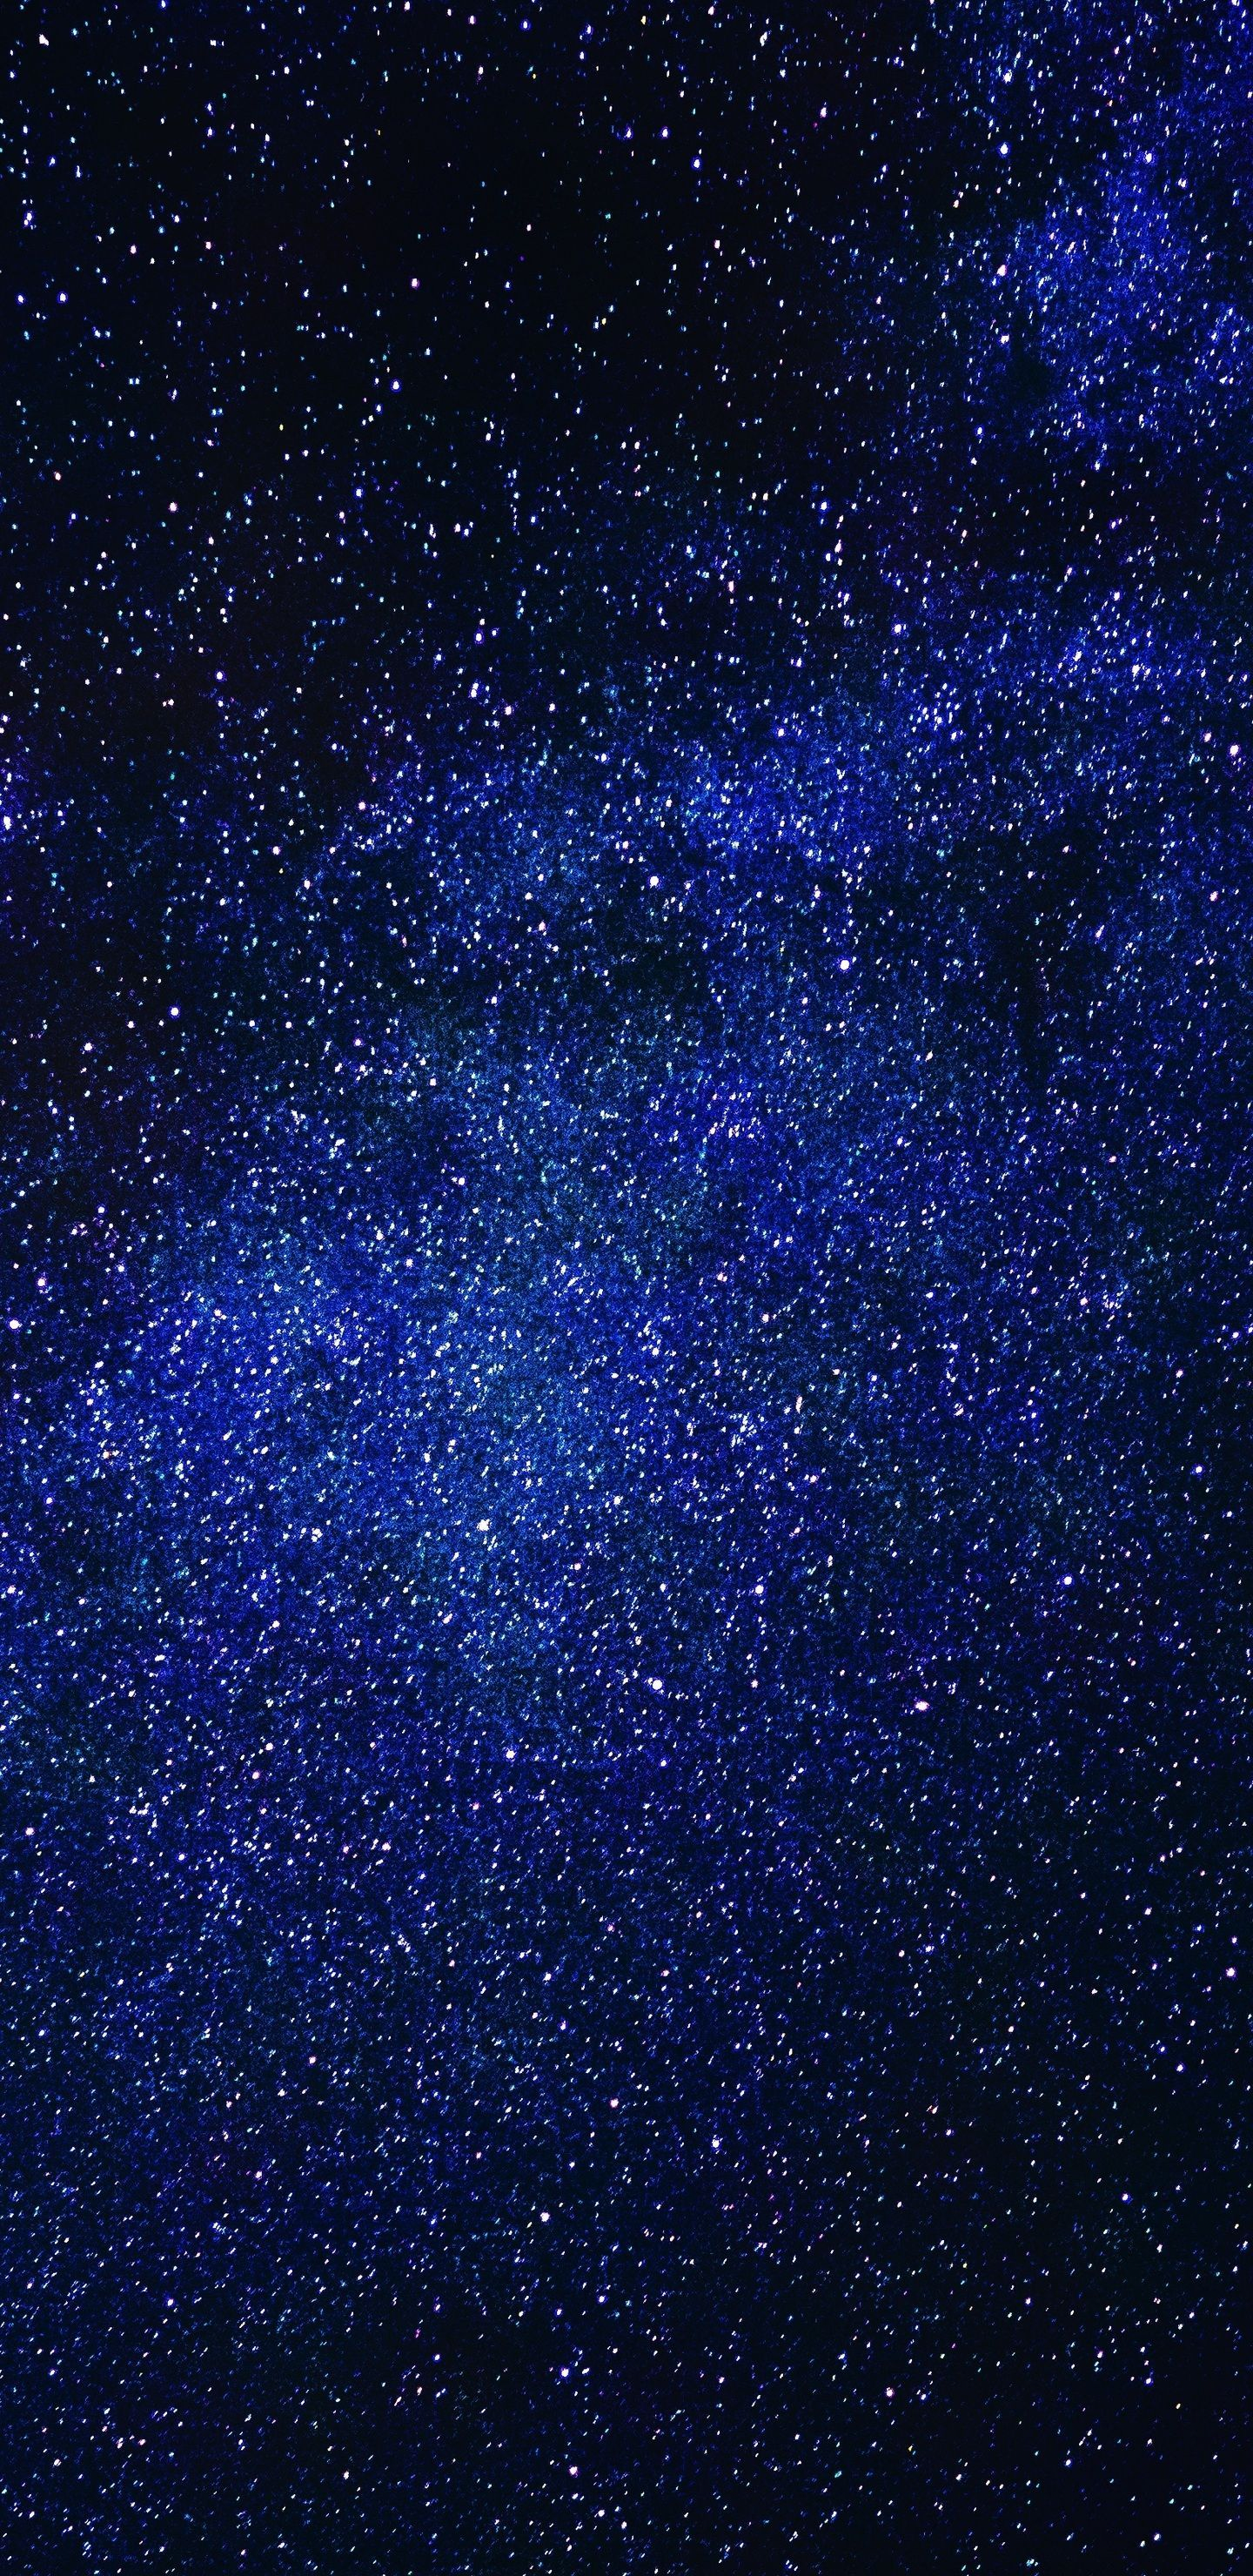 1440x2960 1440x2960 Milky Way Samsung Galaxy Note 9 8 S9 S8 S8 Qhd Hd 4k Galaxy Wallpaper Iphone Wallpaper Space Beautiful Wallpapers